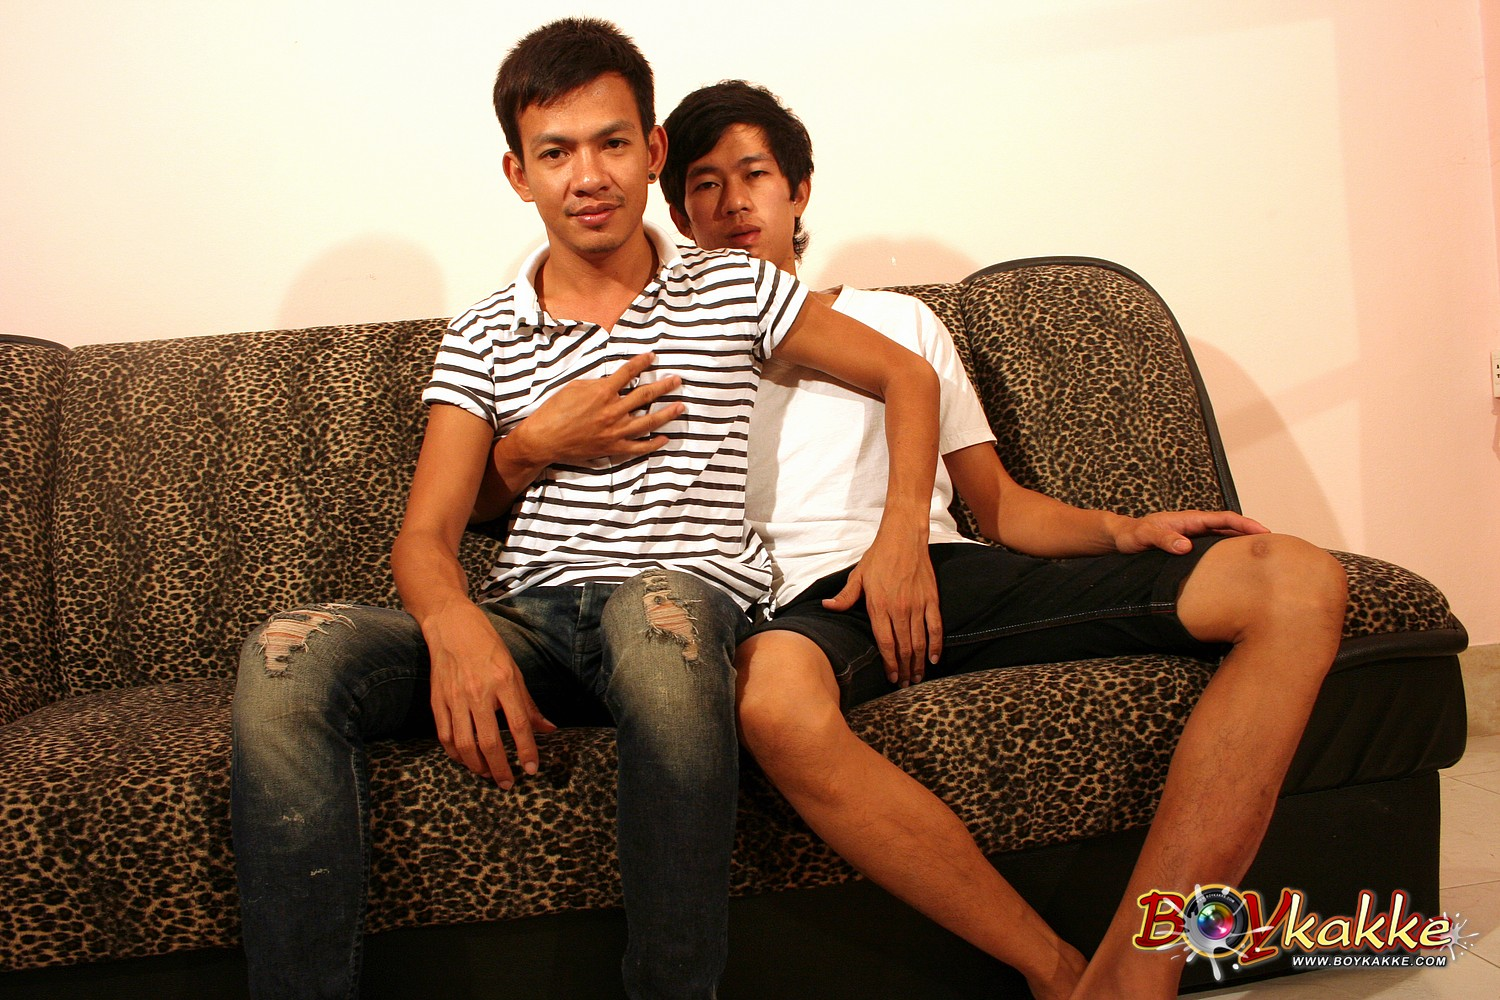 Boykakke-Big-Cum-Neck-Fongenee-Nut-Lakdee01 Amateur Asian Twinks Fuck and Eat Each Others Cum